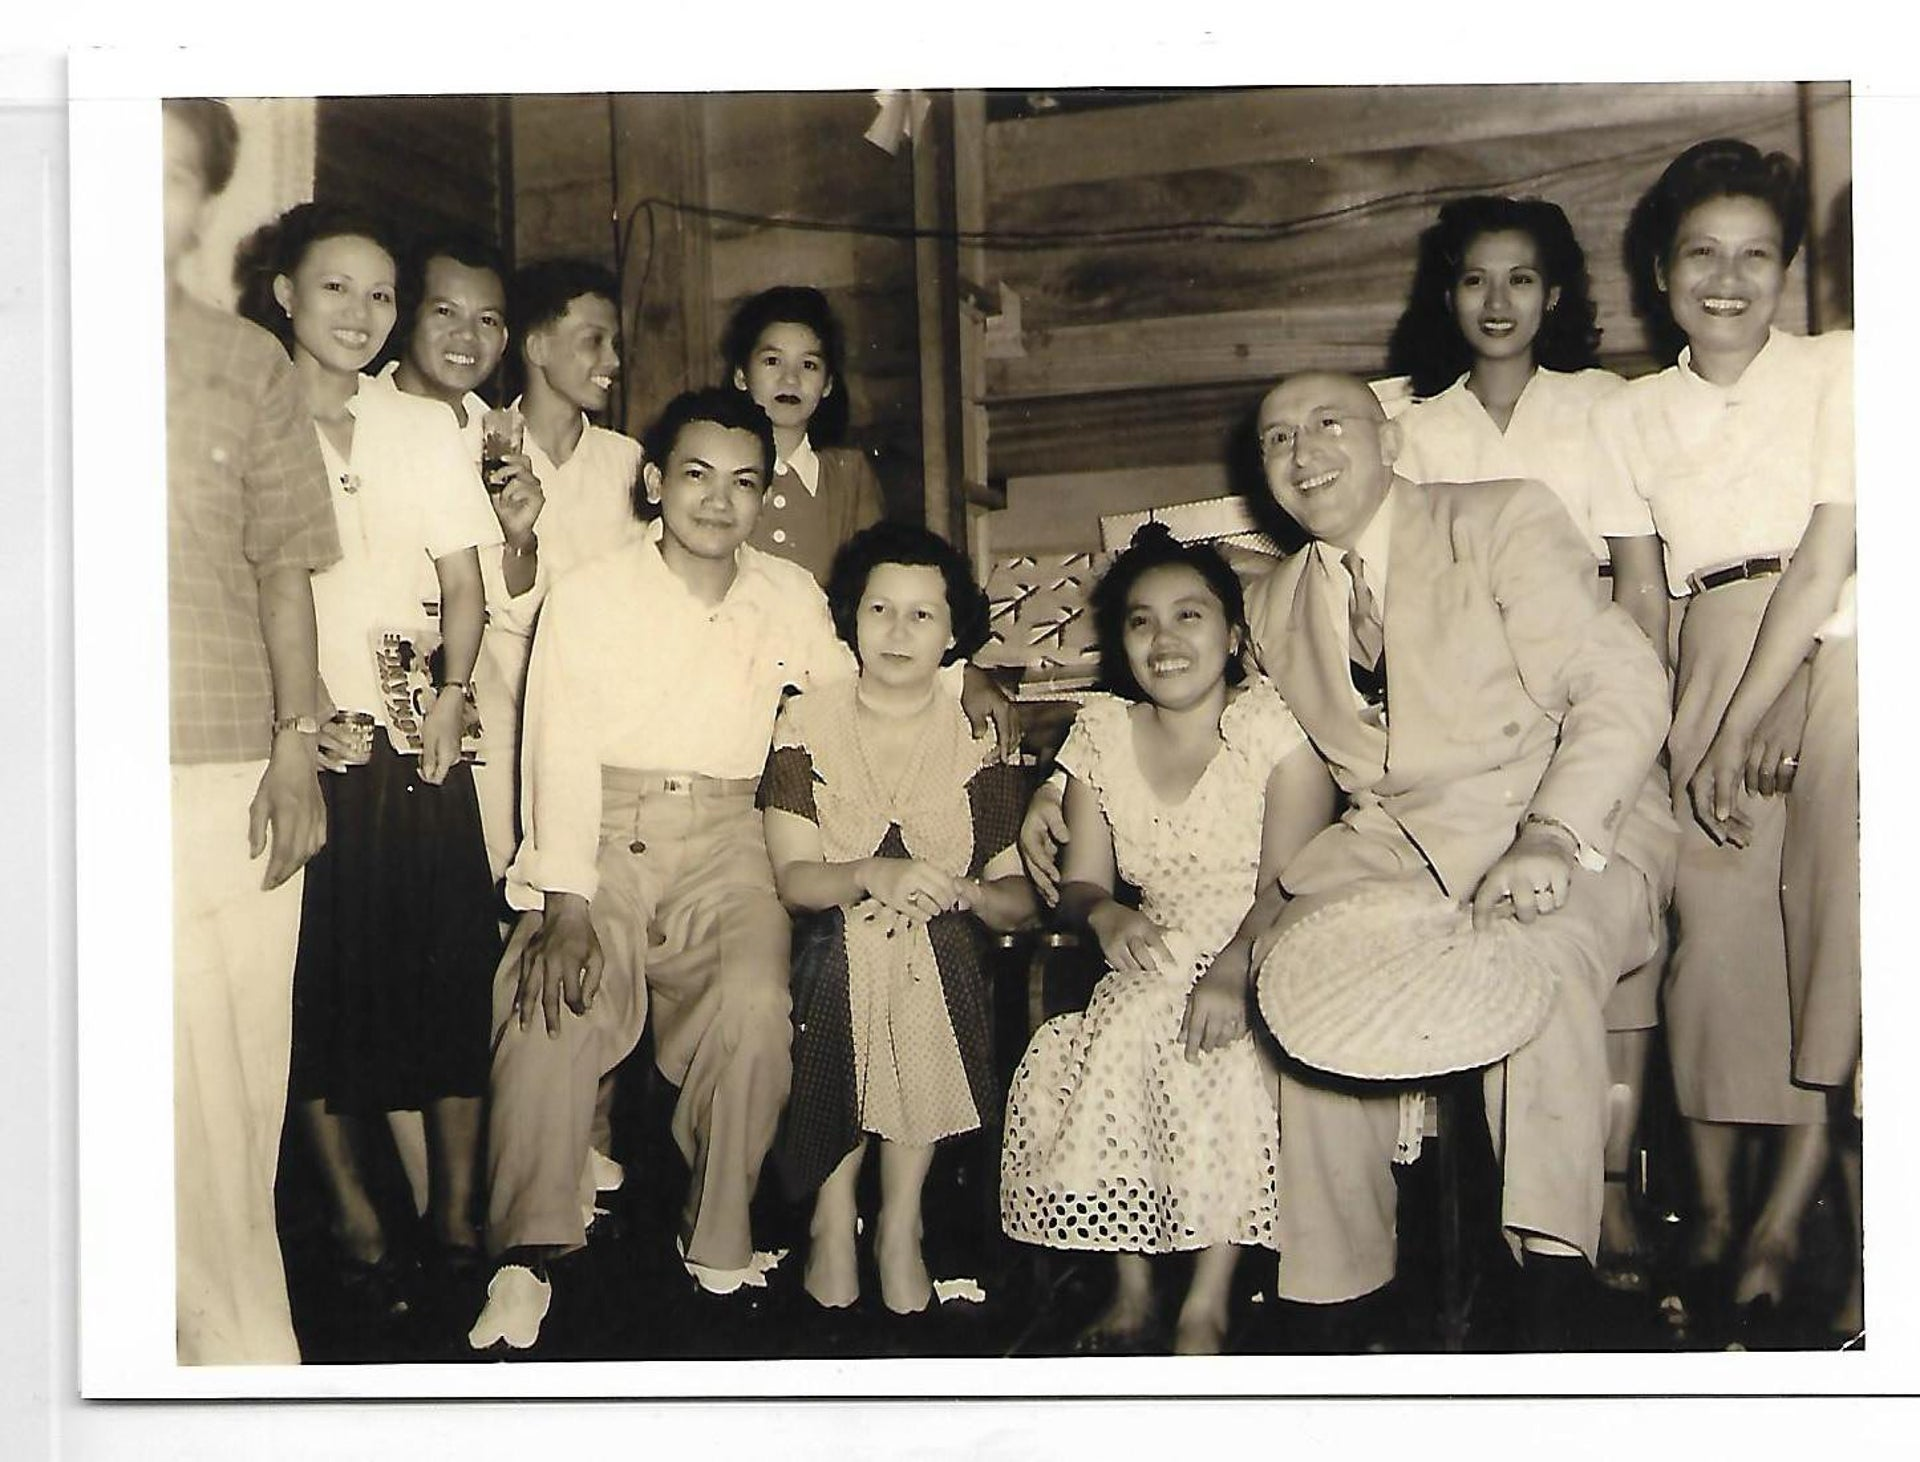 Salo Cassel, third from right, and employees at his store in Manila, 1950s.